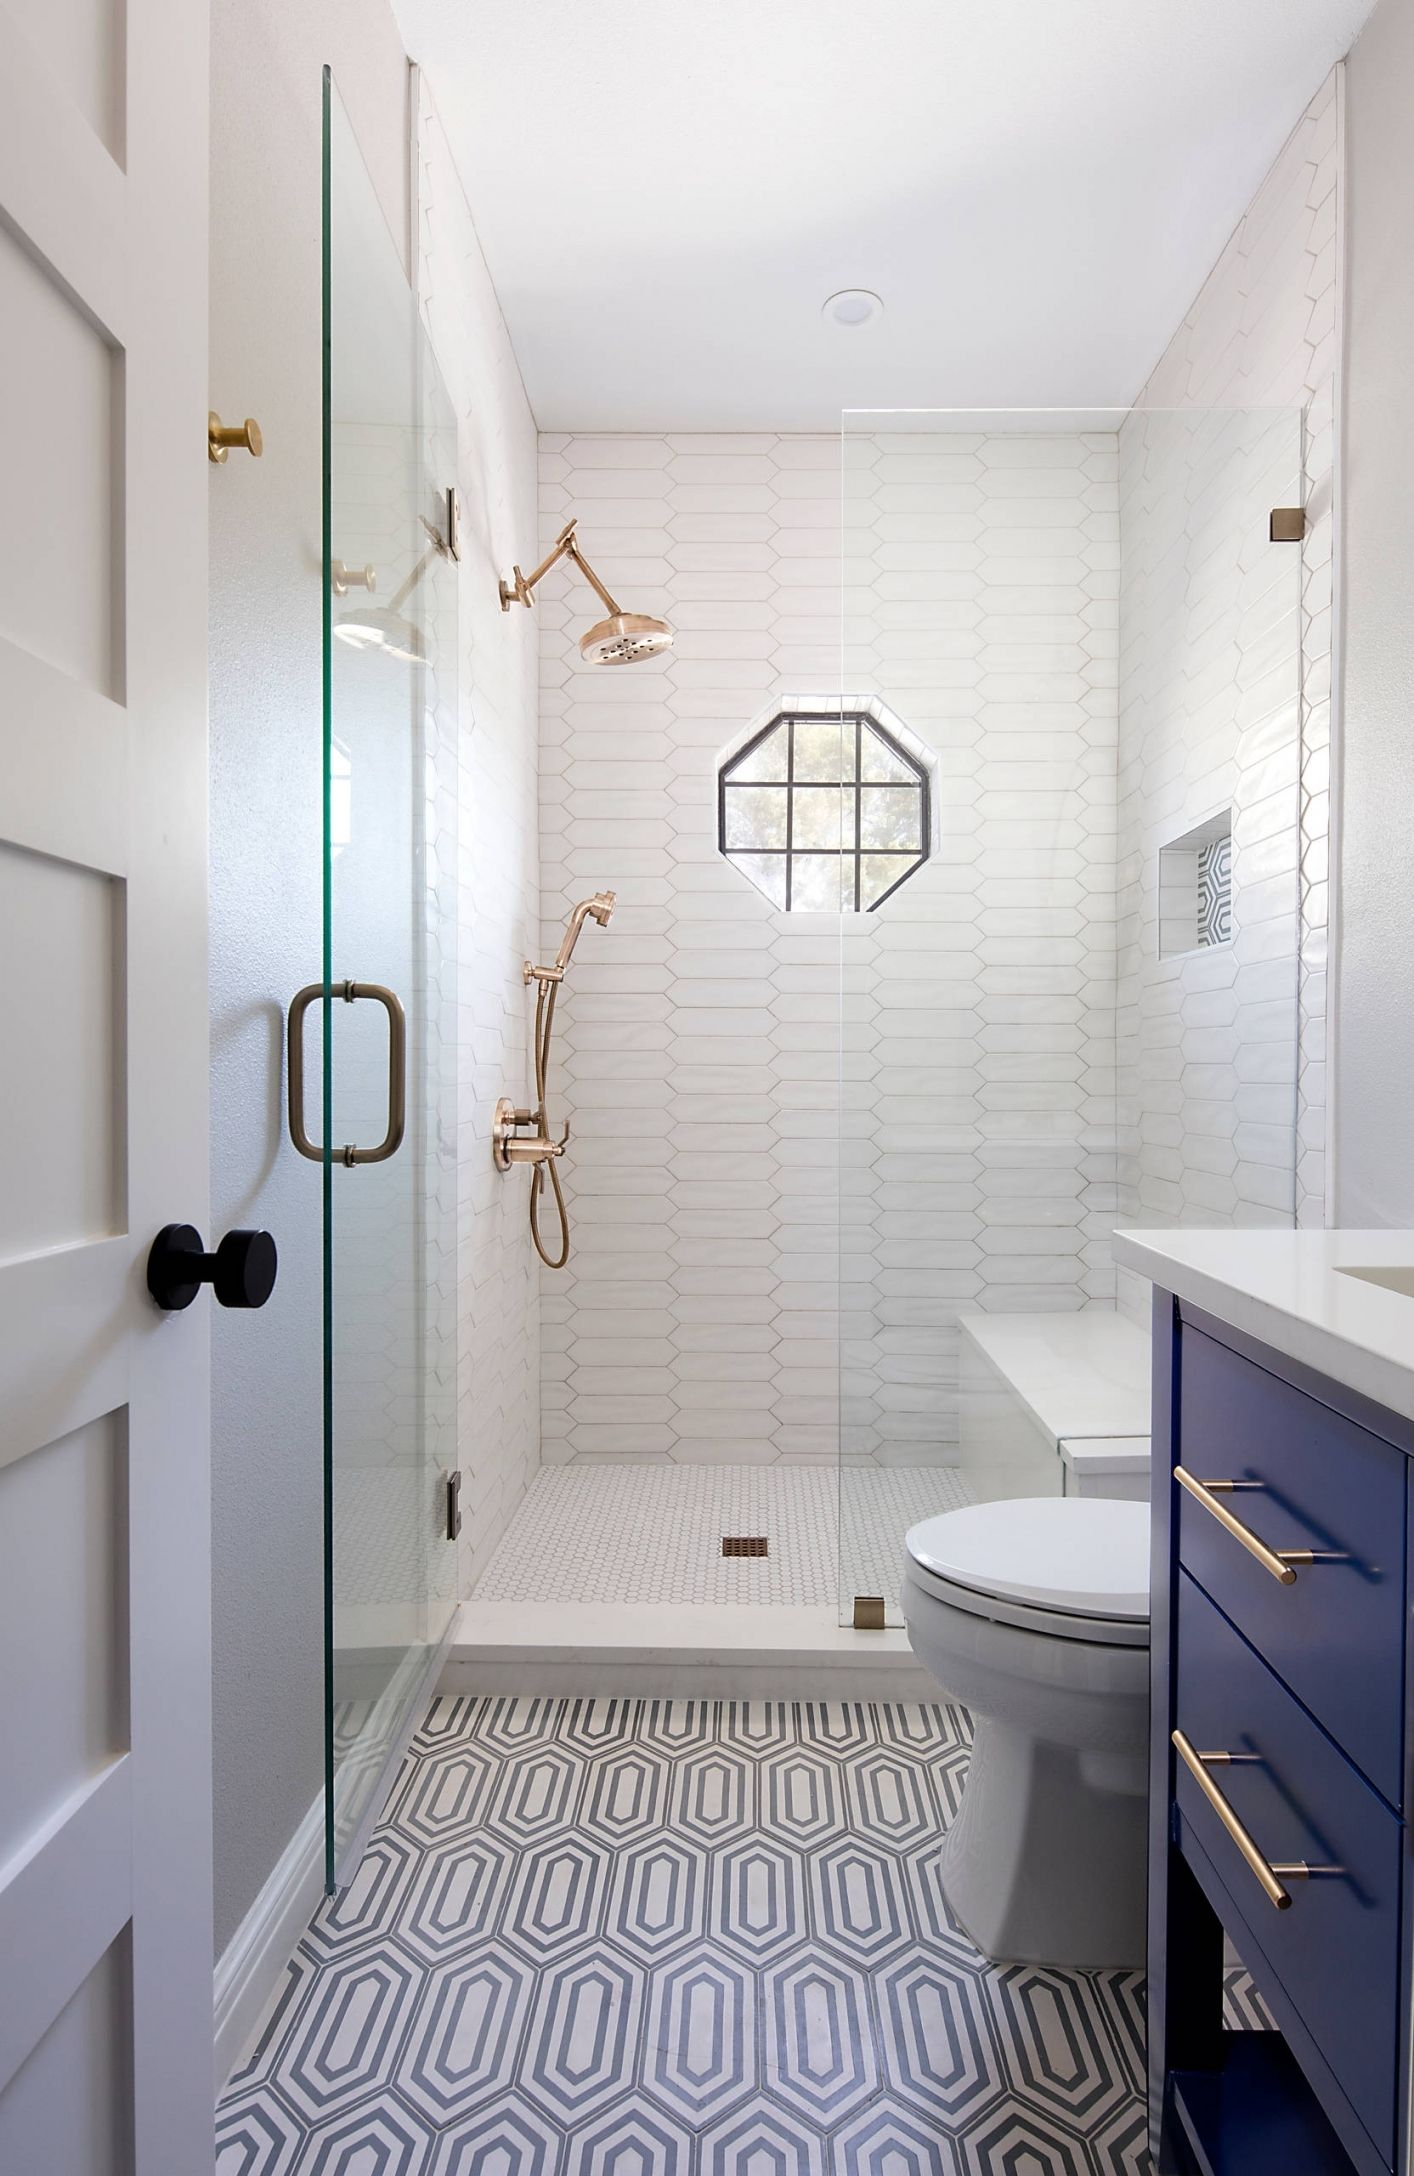 Best Of Small Bathroom Remodel Ideas In 2020 Tiny House Bathroom Bathroom Remodel Designs Guest Bathroom Remodel